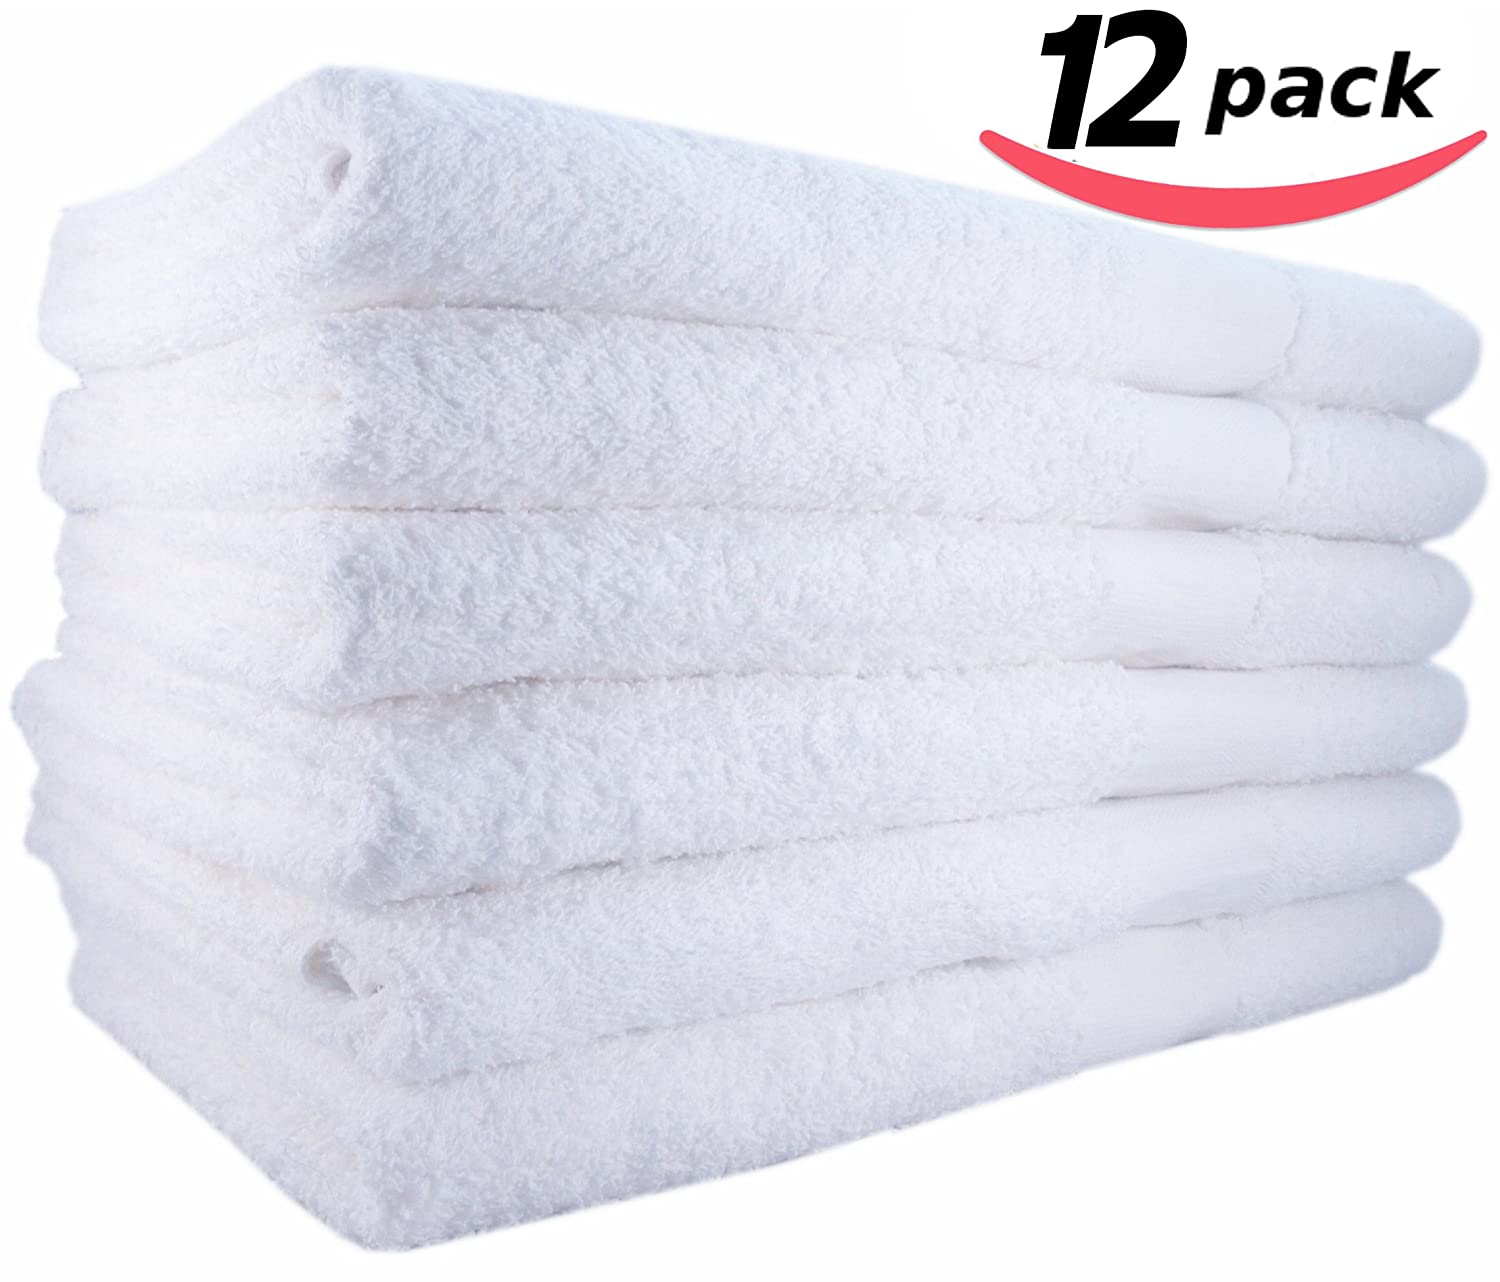 12 WHITE BATH TOWELS 22x44 Inches 100% COTTON, SOFT AND